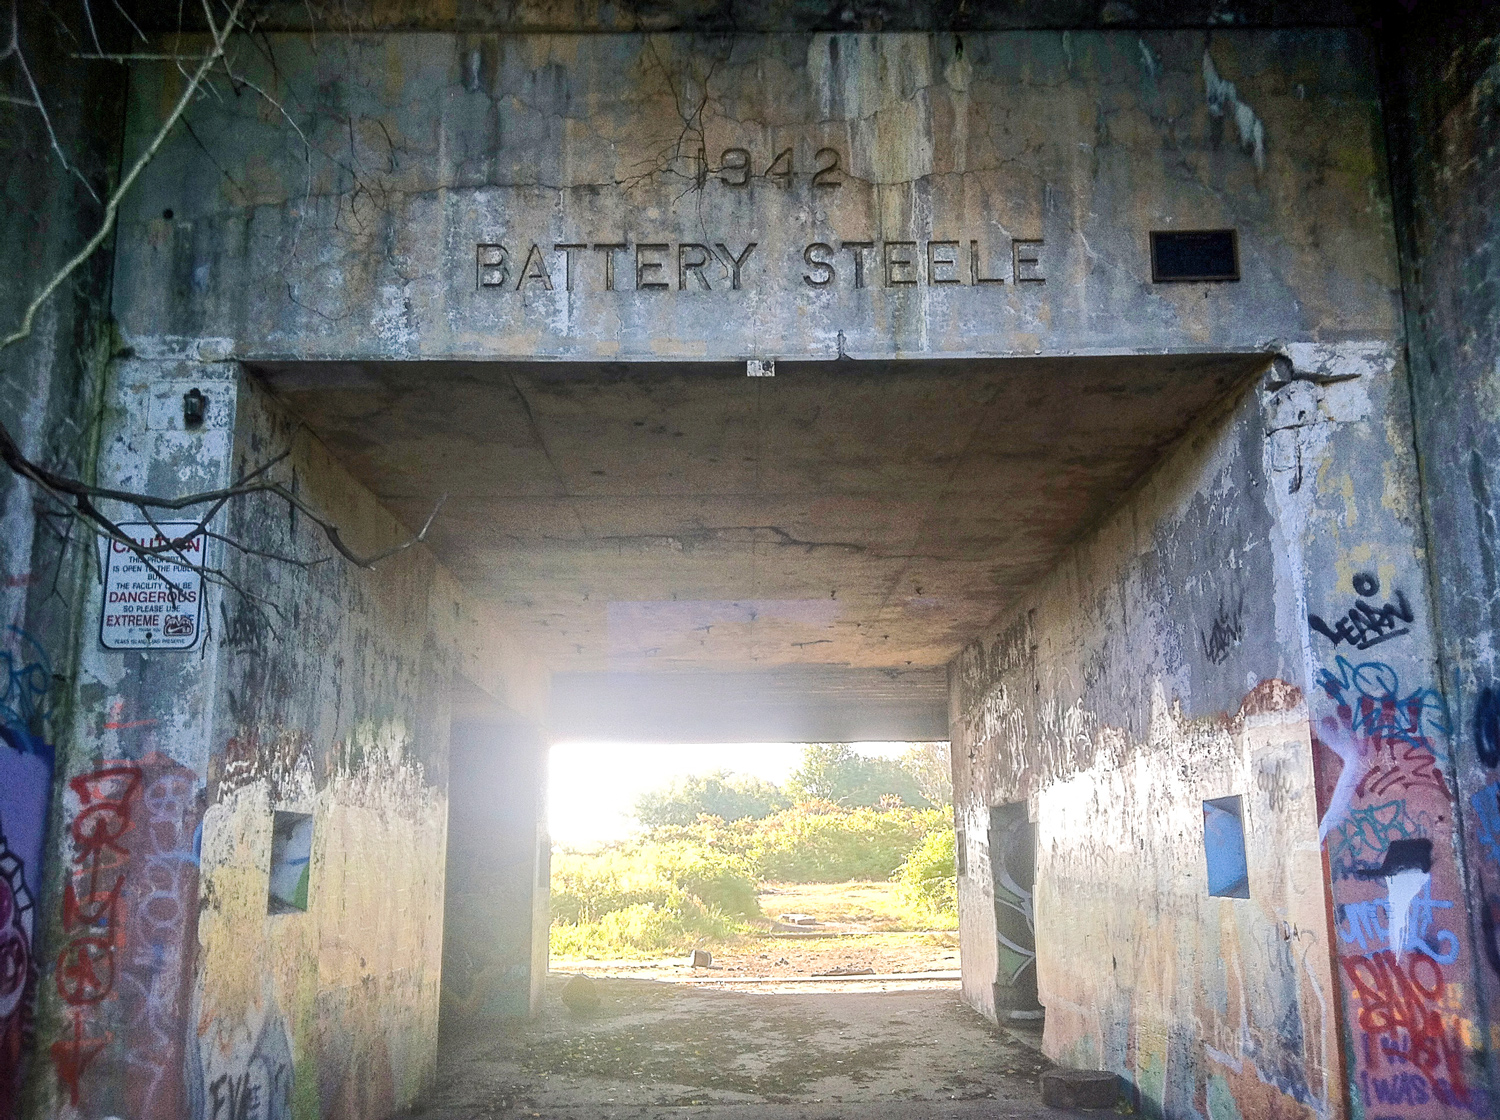 Battery Steele is a decommissioned WWII bunker on Peaks Island.I took this with an iPhone 4 while working a carpentry job out there my first summer in Maine. I was beginning to look for photographs everywhere I went.